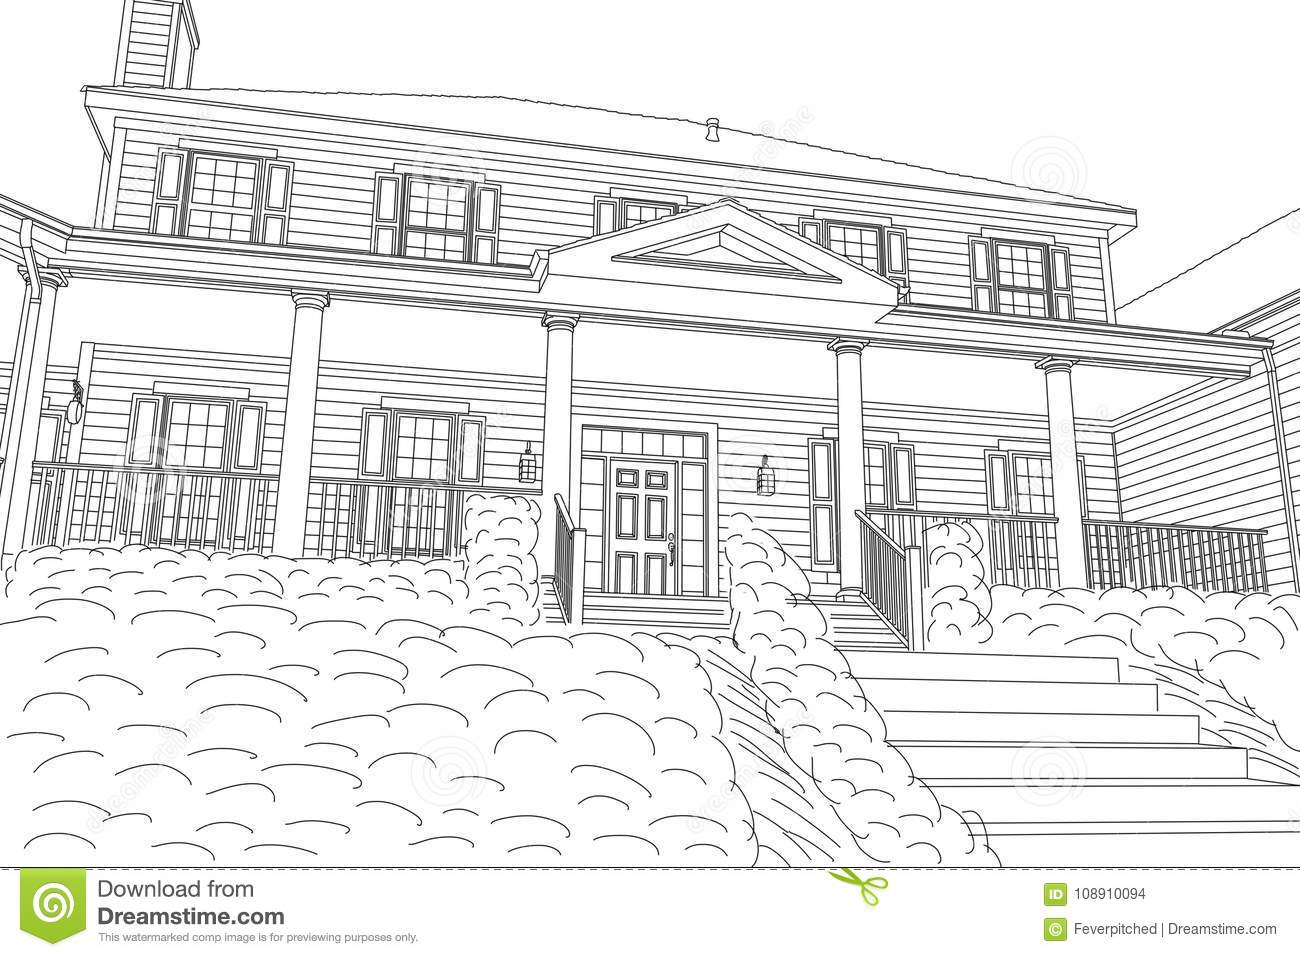 Beautiful Custom House Drawing on a White Background.